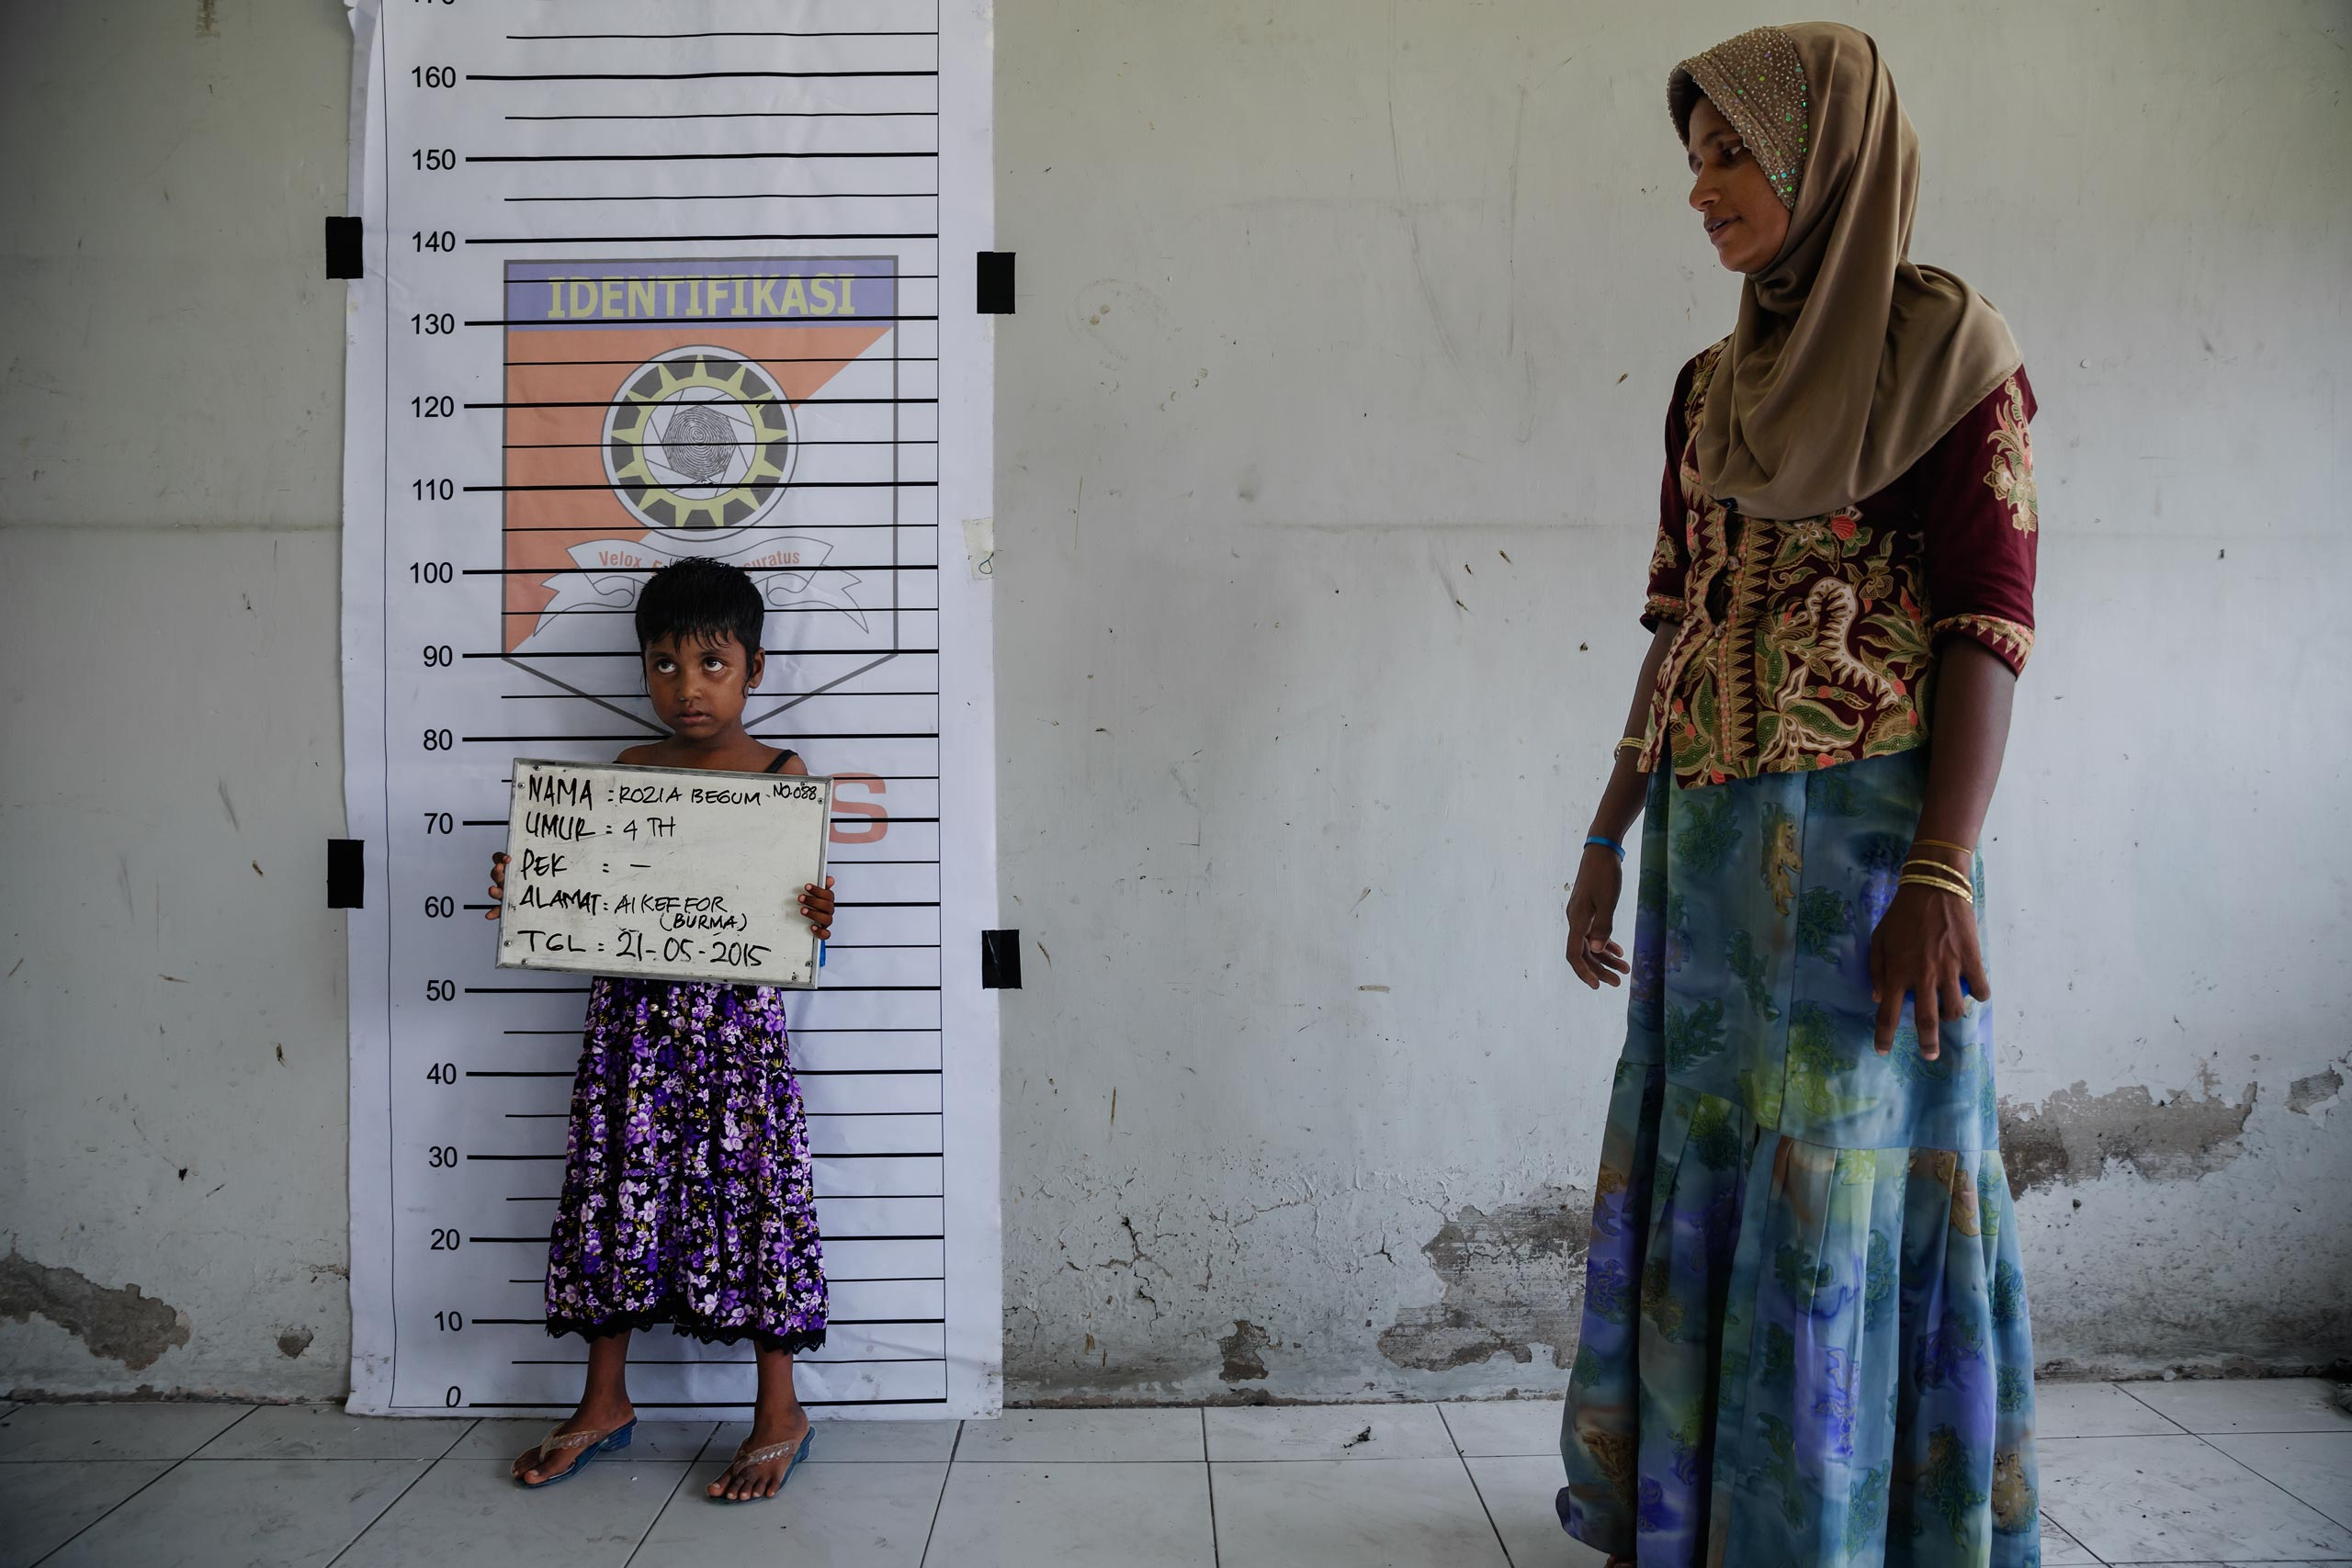 A Rohingya child is registered at a temporary shelter in Indonesia.